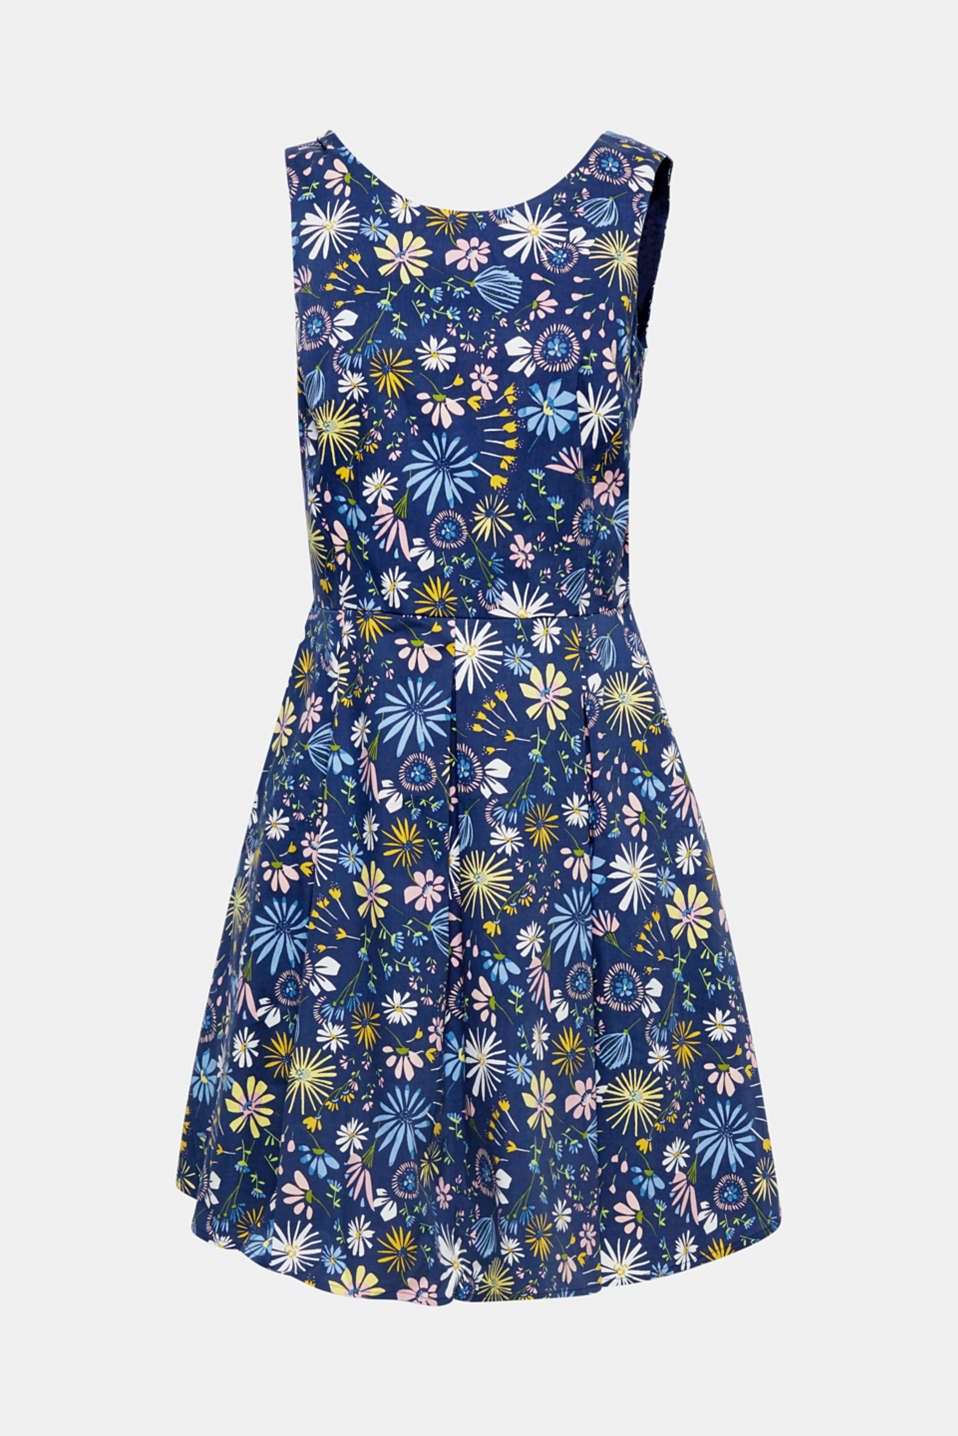 The flared silhouette with a beautiful back neckline and the opulent floral decoration makes this dress a feminine eye-catcher.